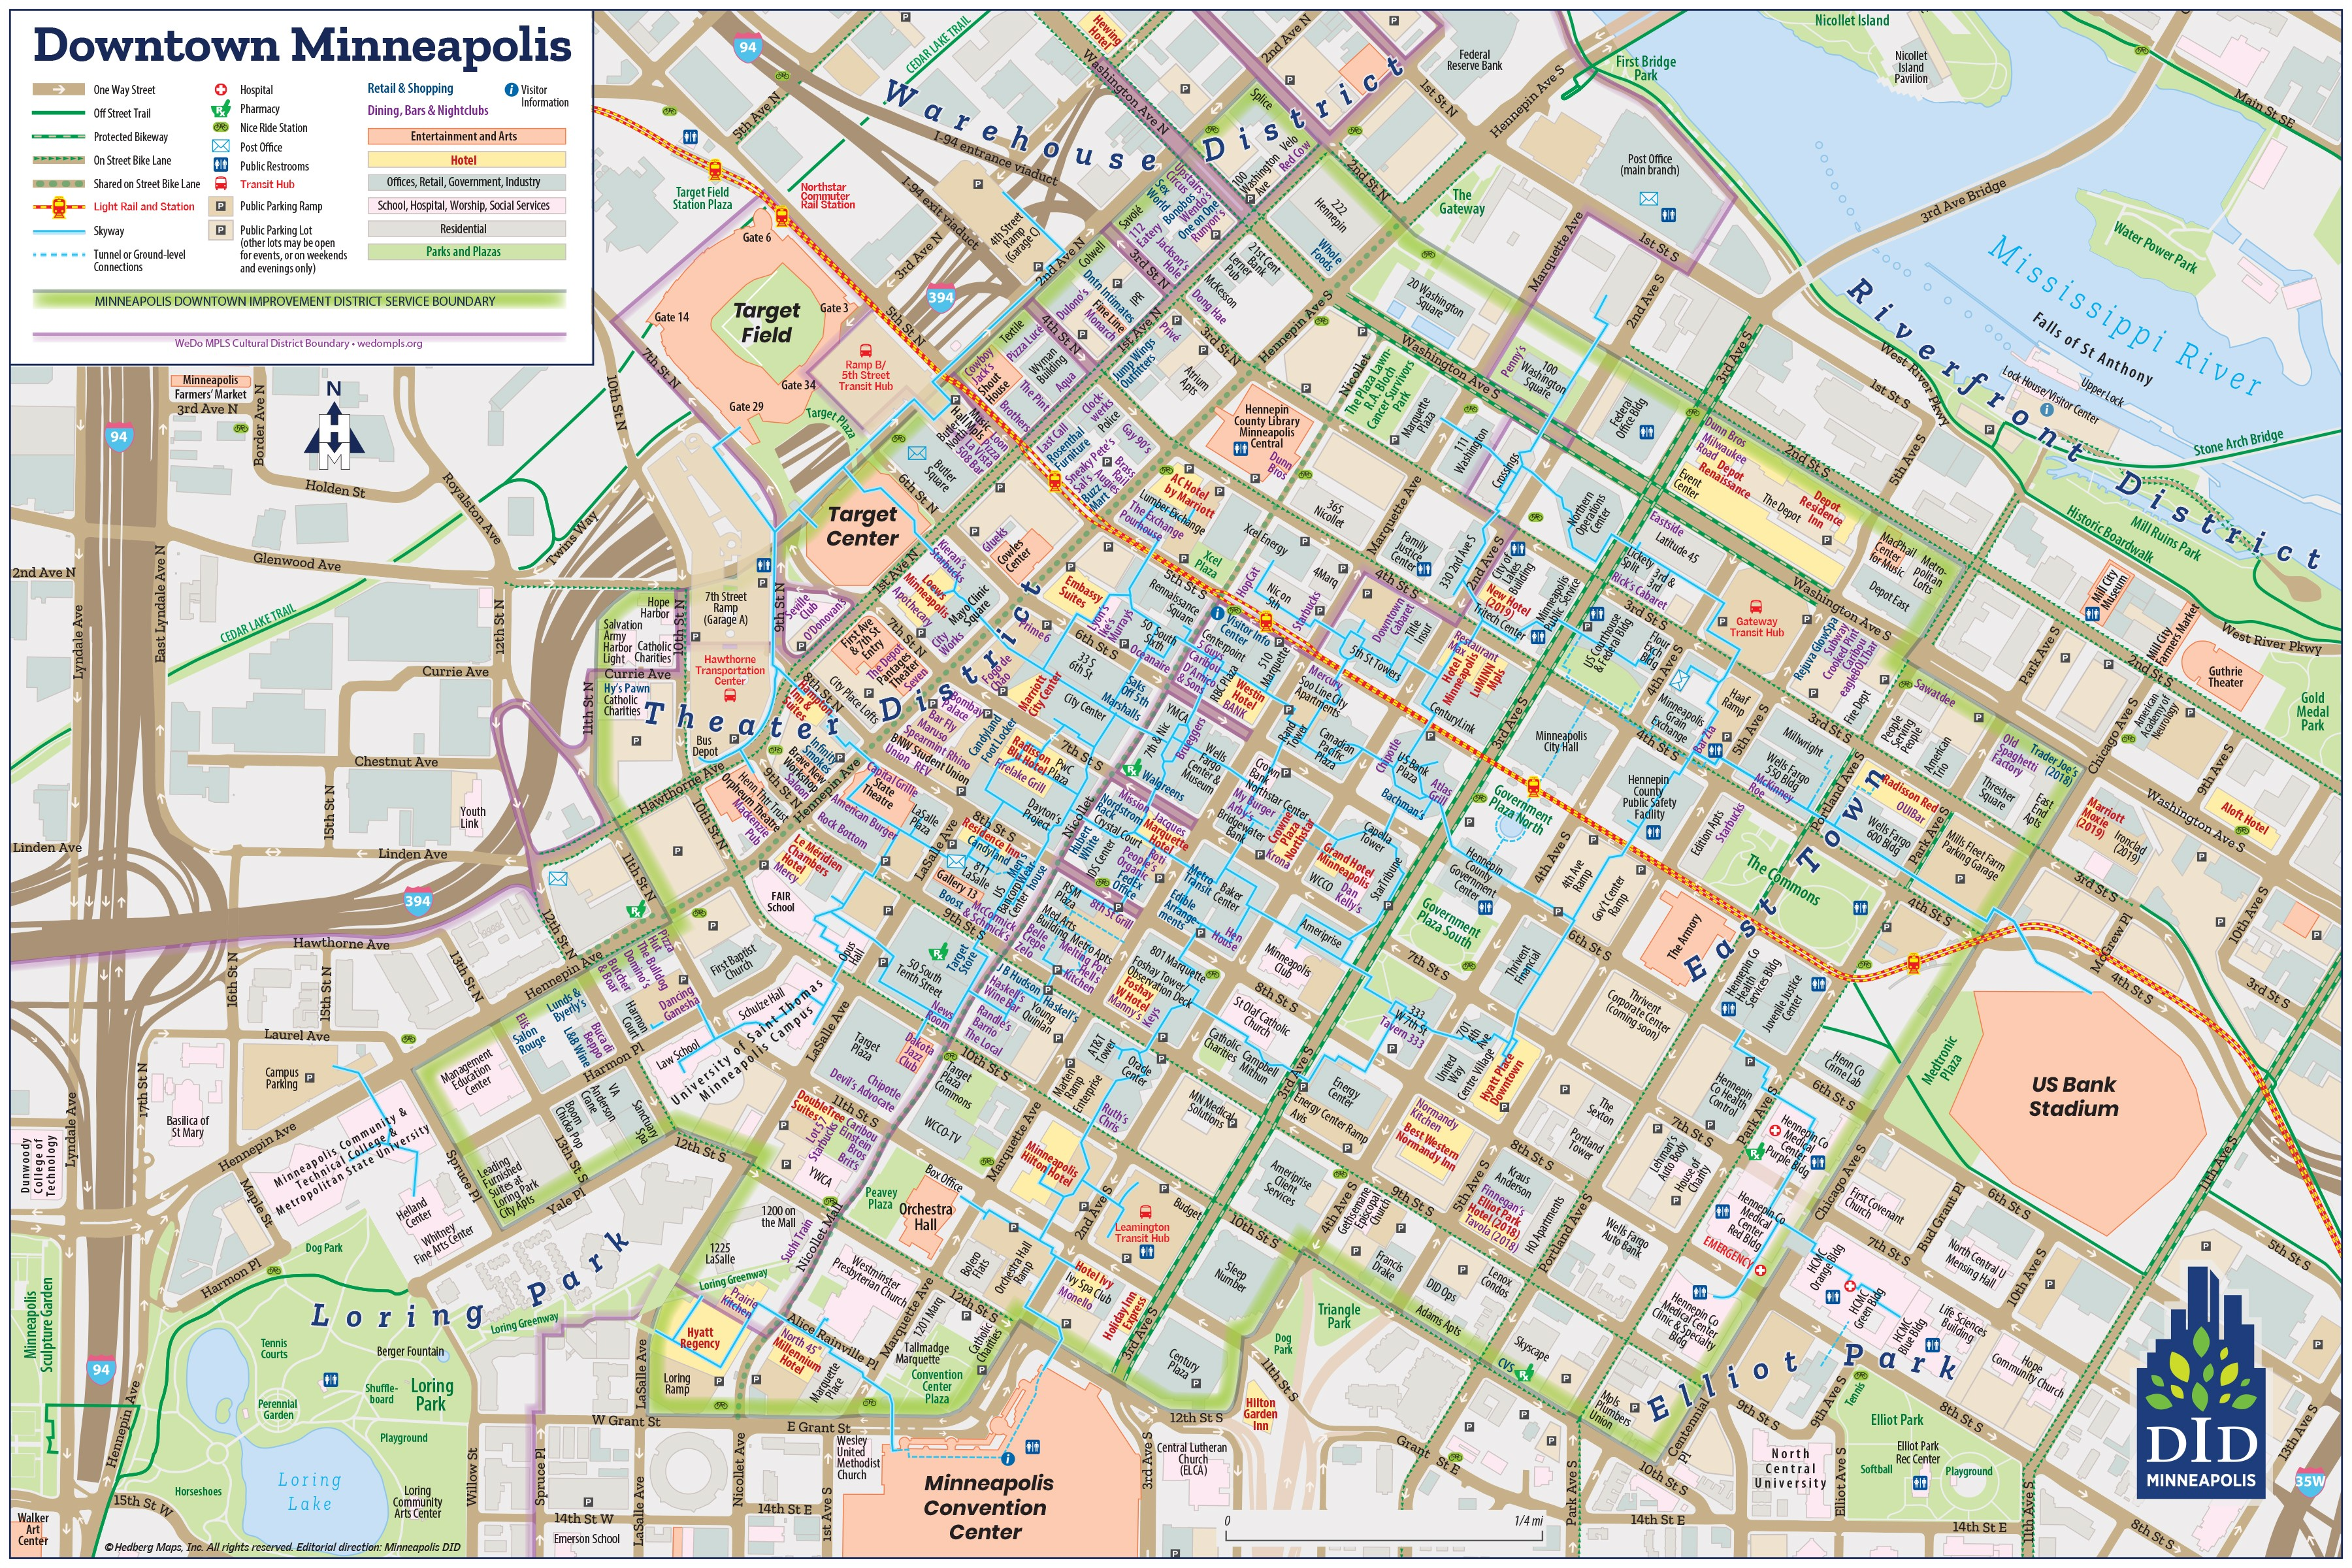 DID Downtown Minneapolis Visitor Map